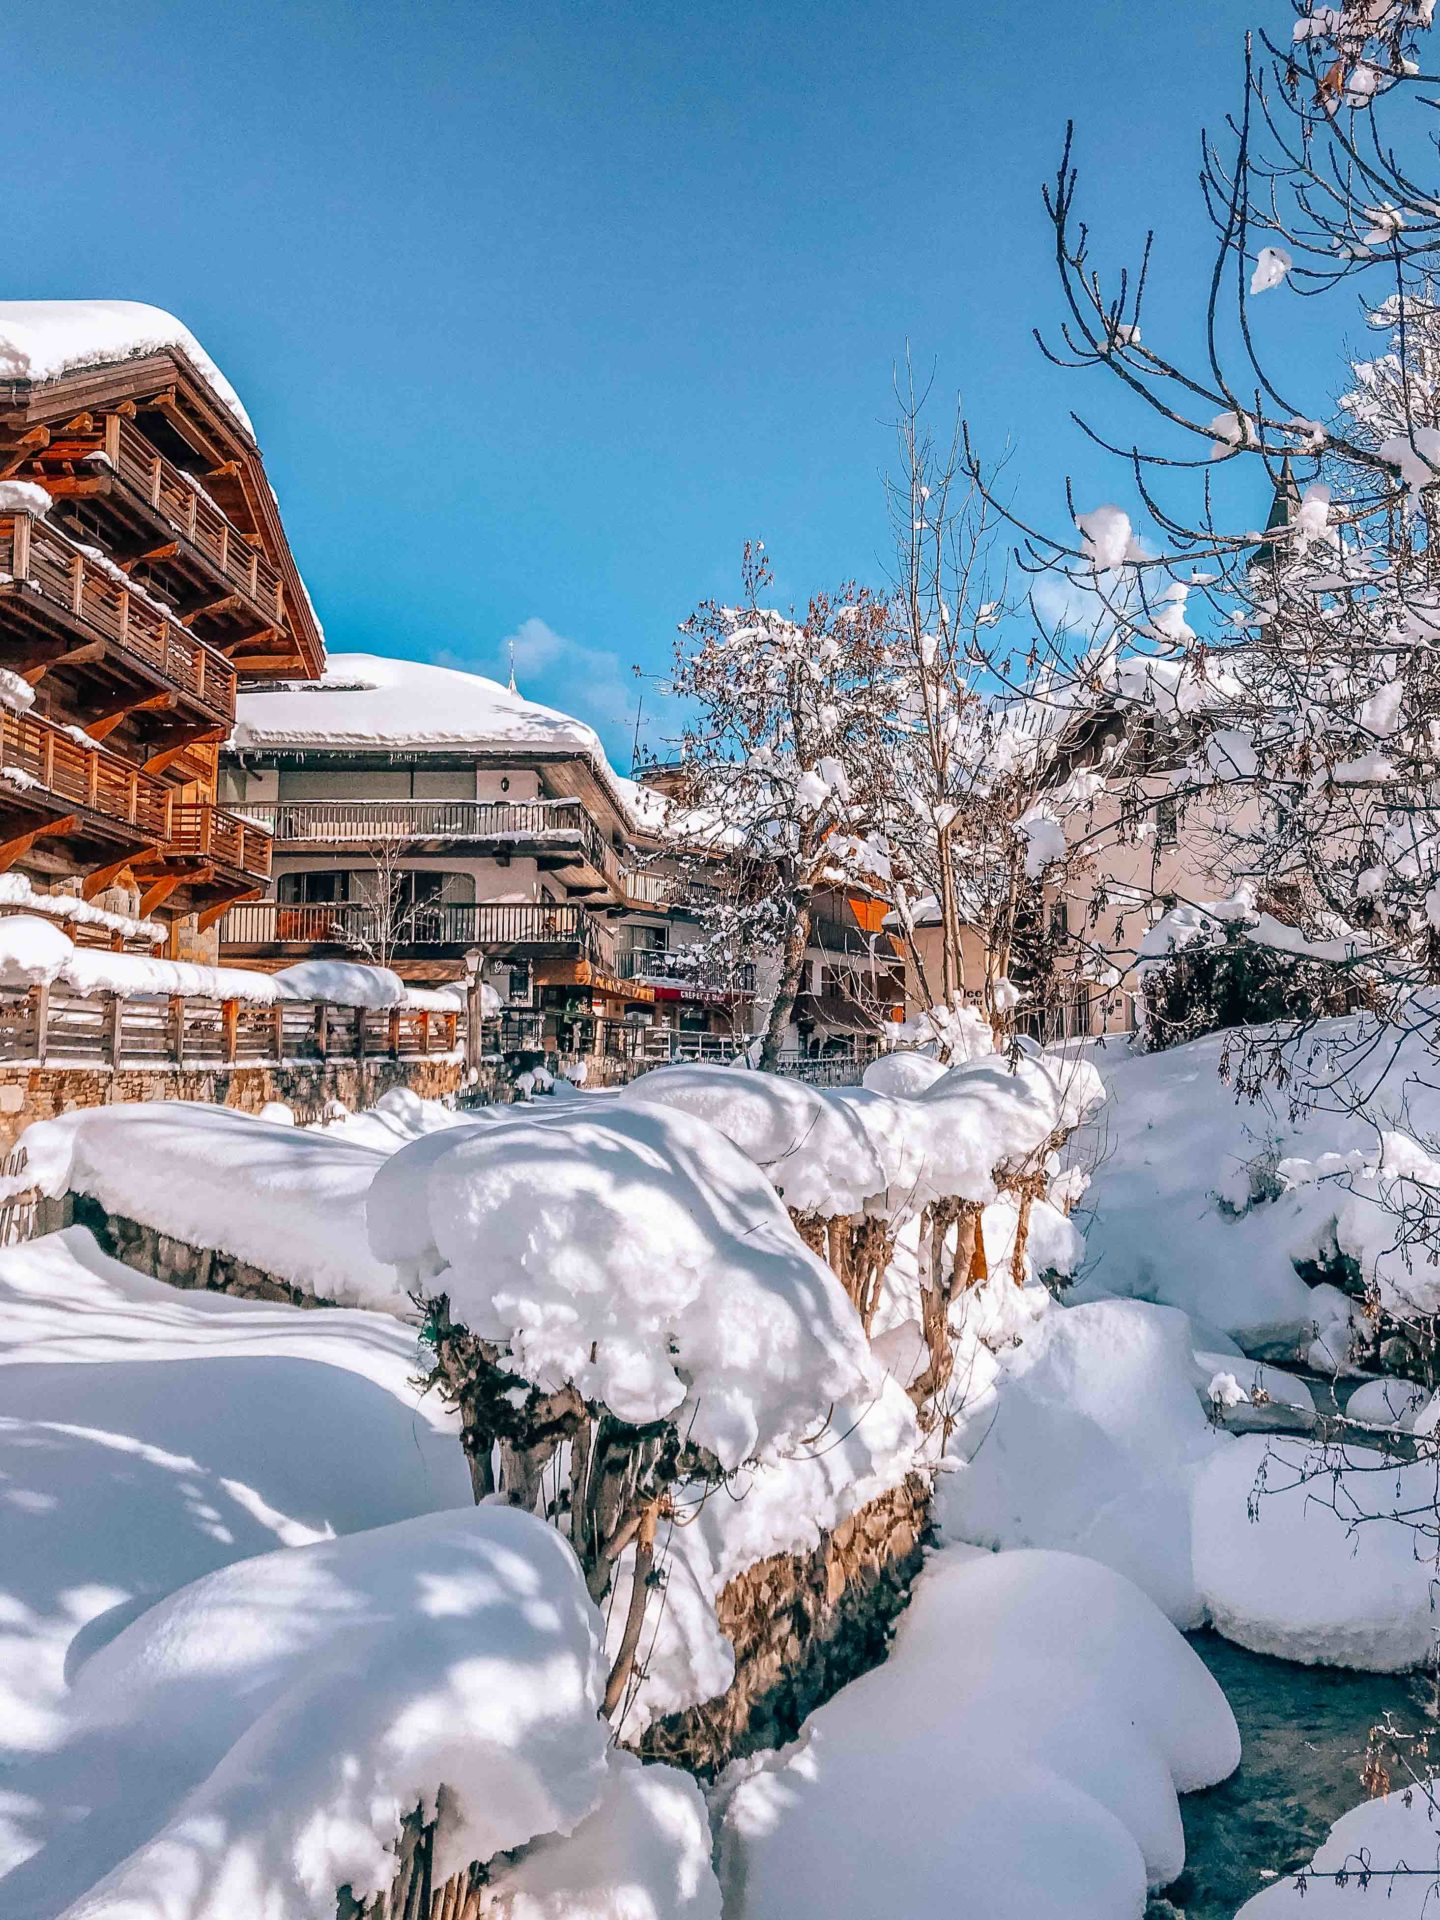 Views of Megeve, France